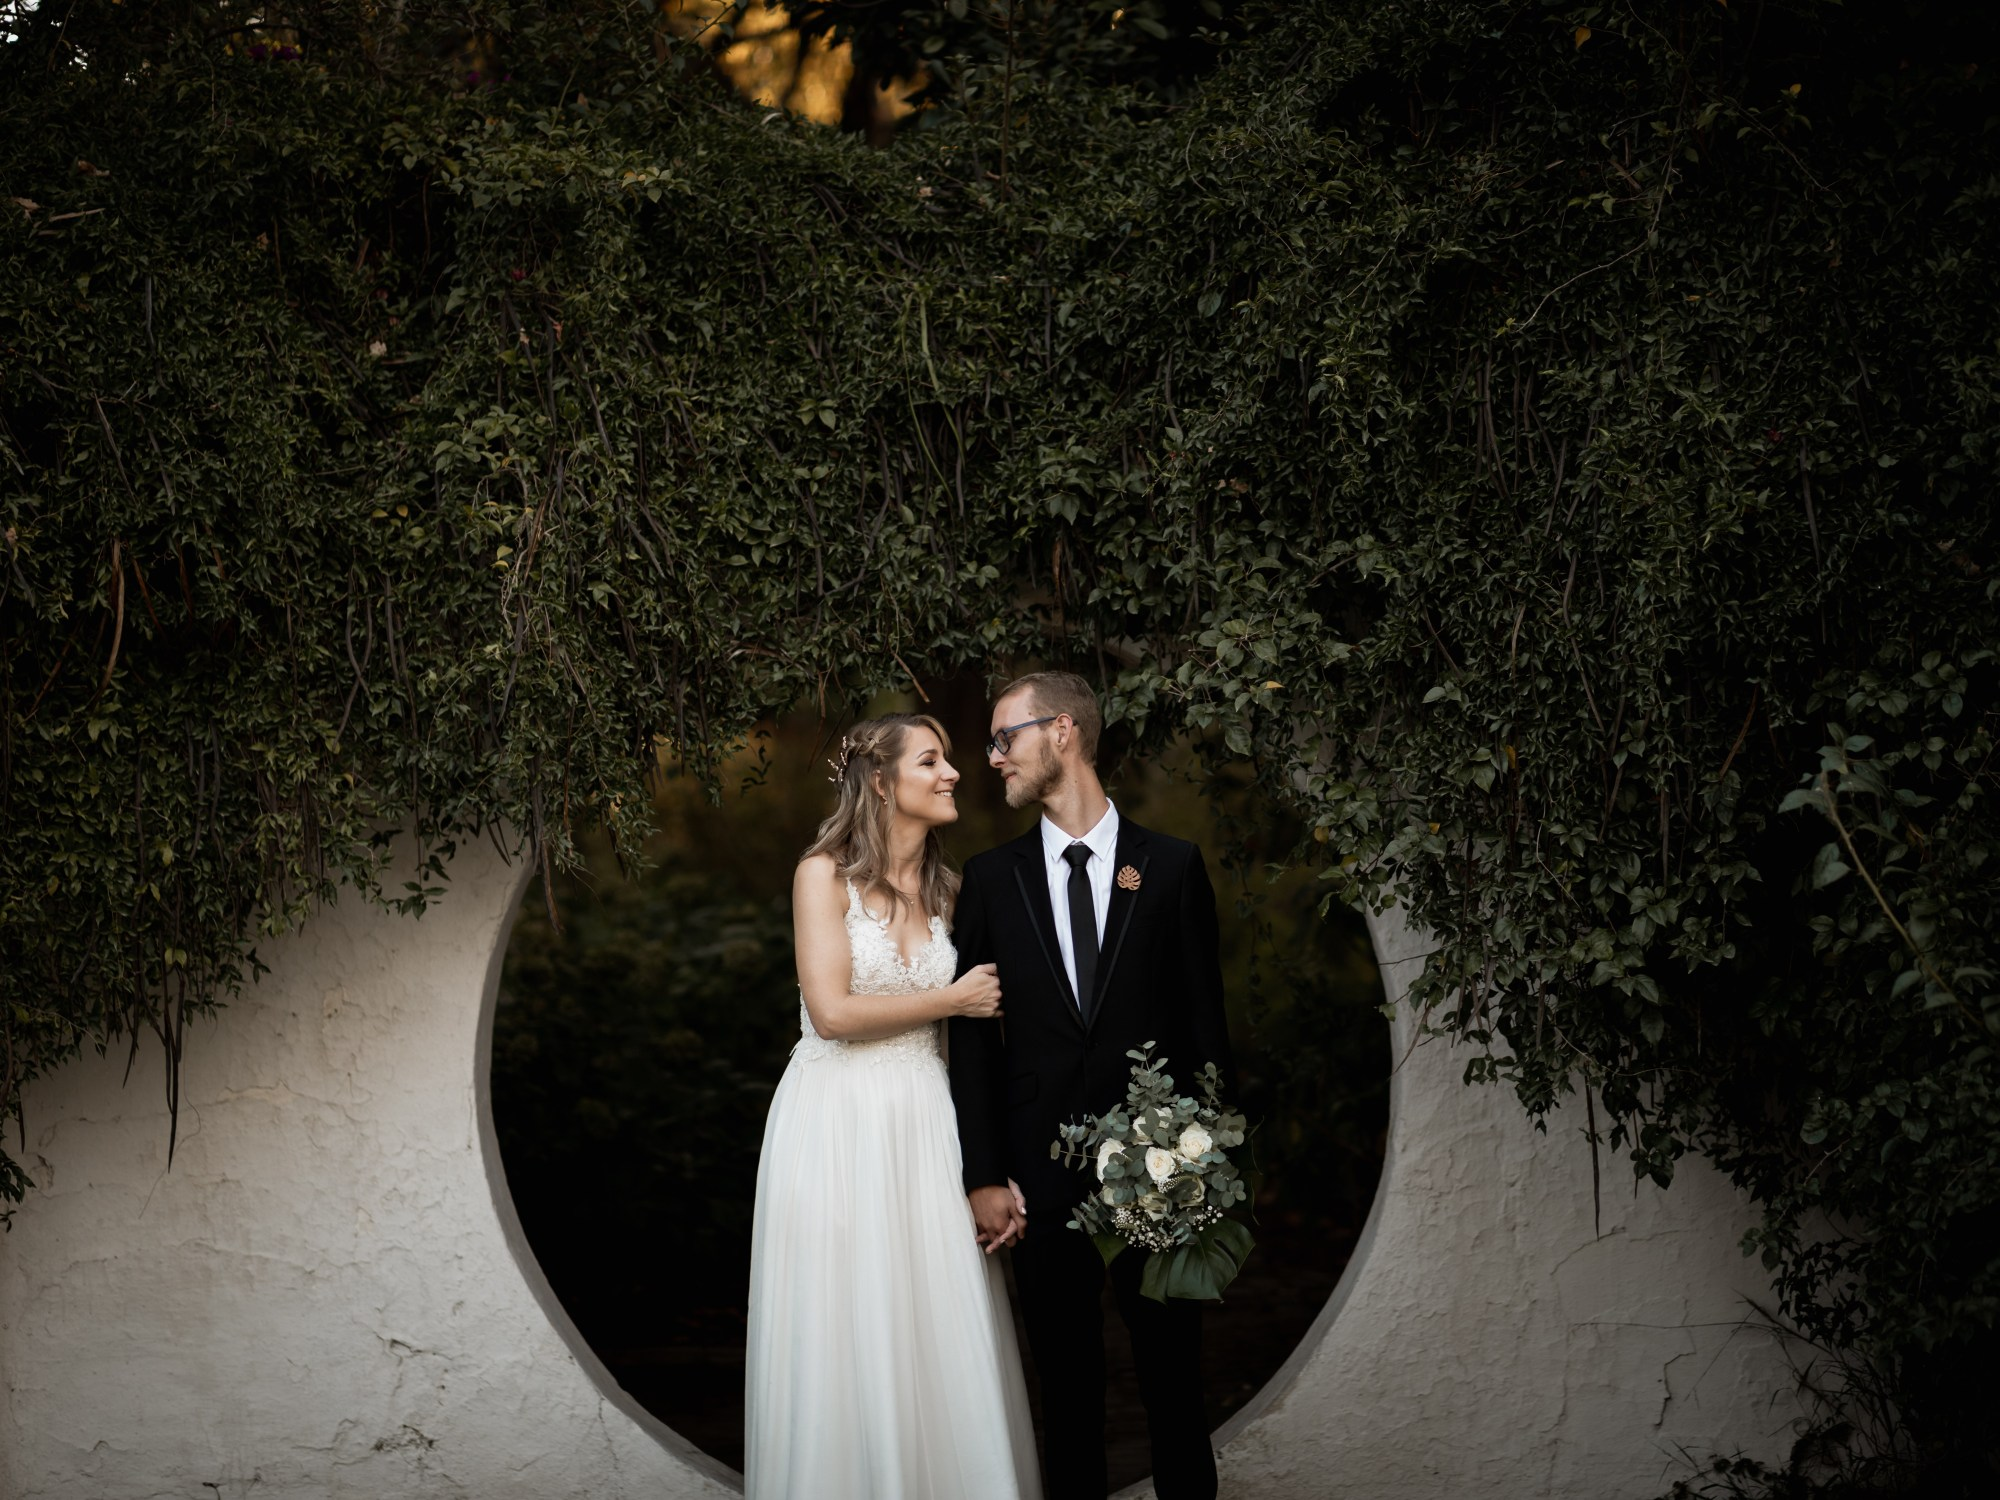 Natte Valleij Wedding by photographer Cilliers Visser